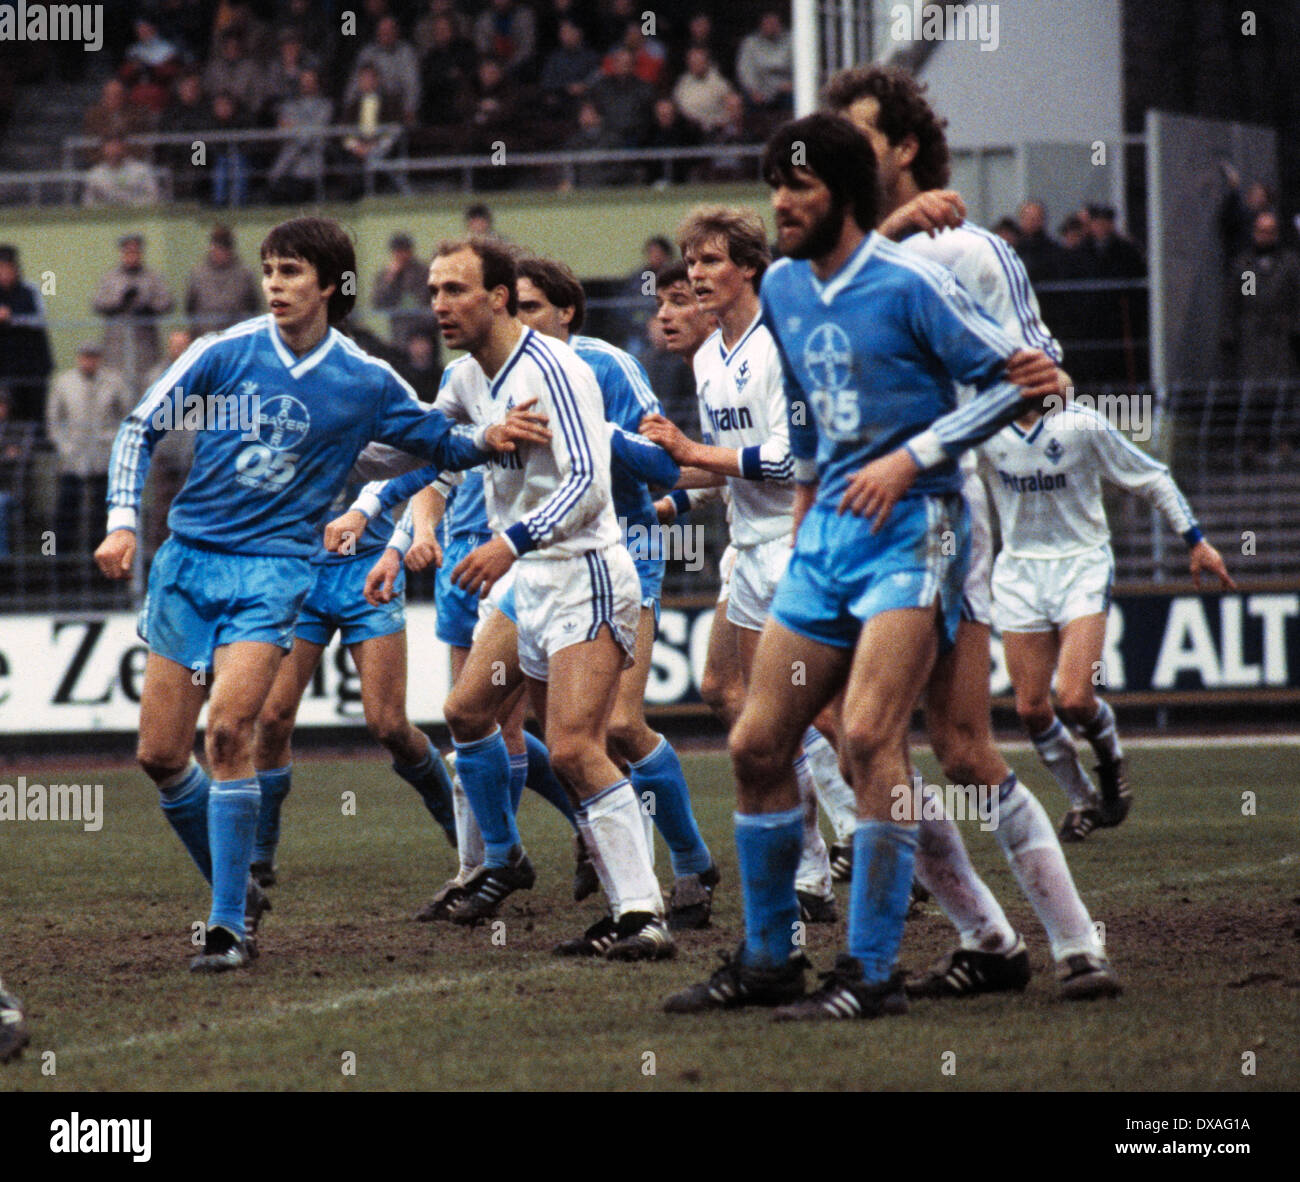 football, Bundesliga, 1984/1985, Grotenburg Stadium, FC Bayer 05 Uerdingen versus SV Waldhof Mannheim 2:2, scene of the match, f.l.t.r. Larus Gudmundsson (Bayer), Dimitrios Tsionanis (SVW), Horst Feilzer (Bayer) covered, Bernd Klotz (SVW) covered, Alfred - Stock Image